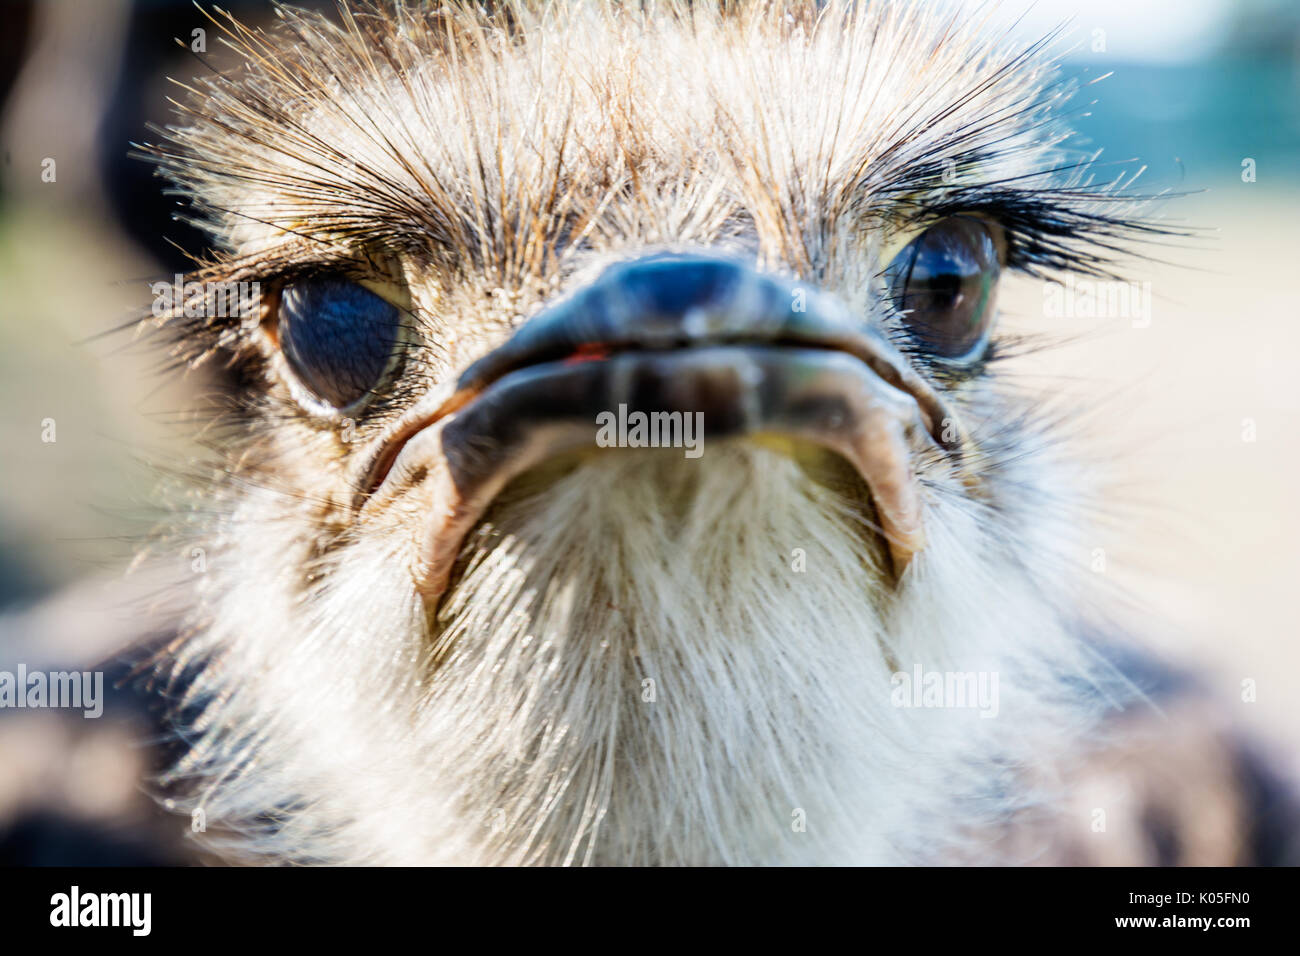 Wild funny ostrich portrait, focus on eyes - Stock Image